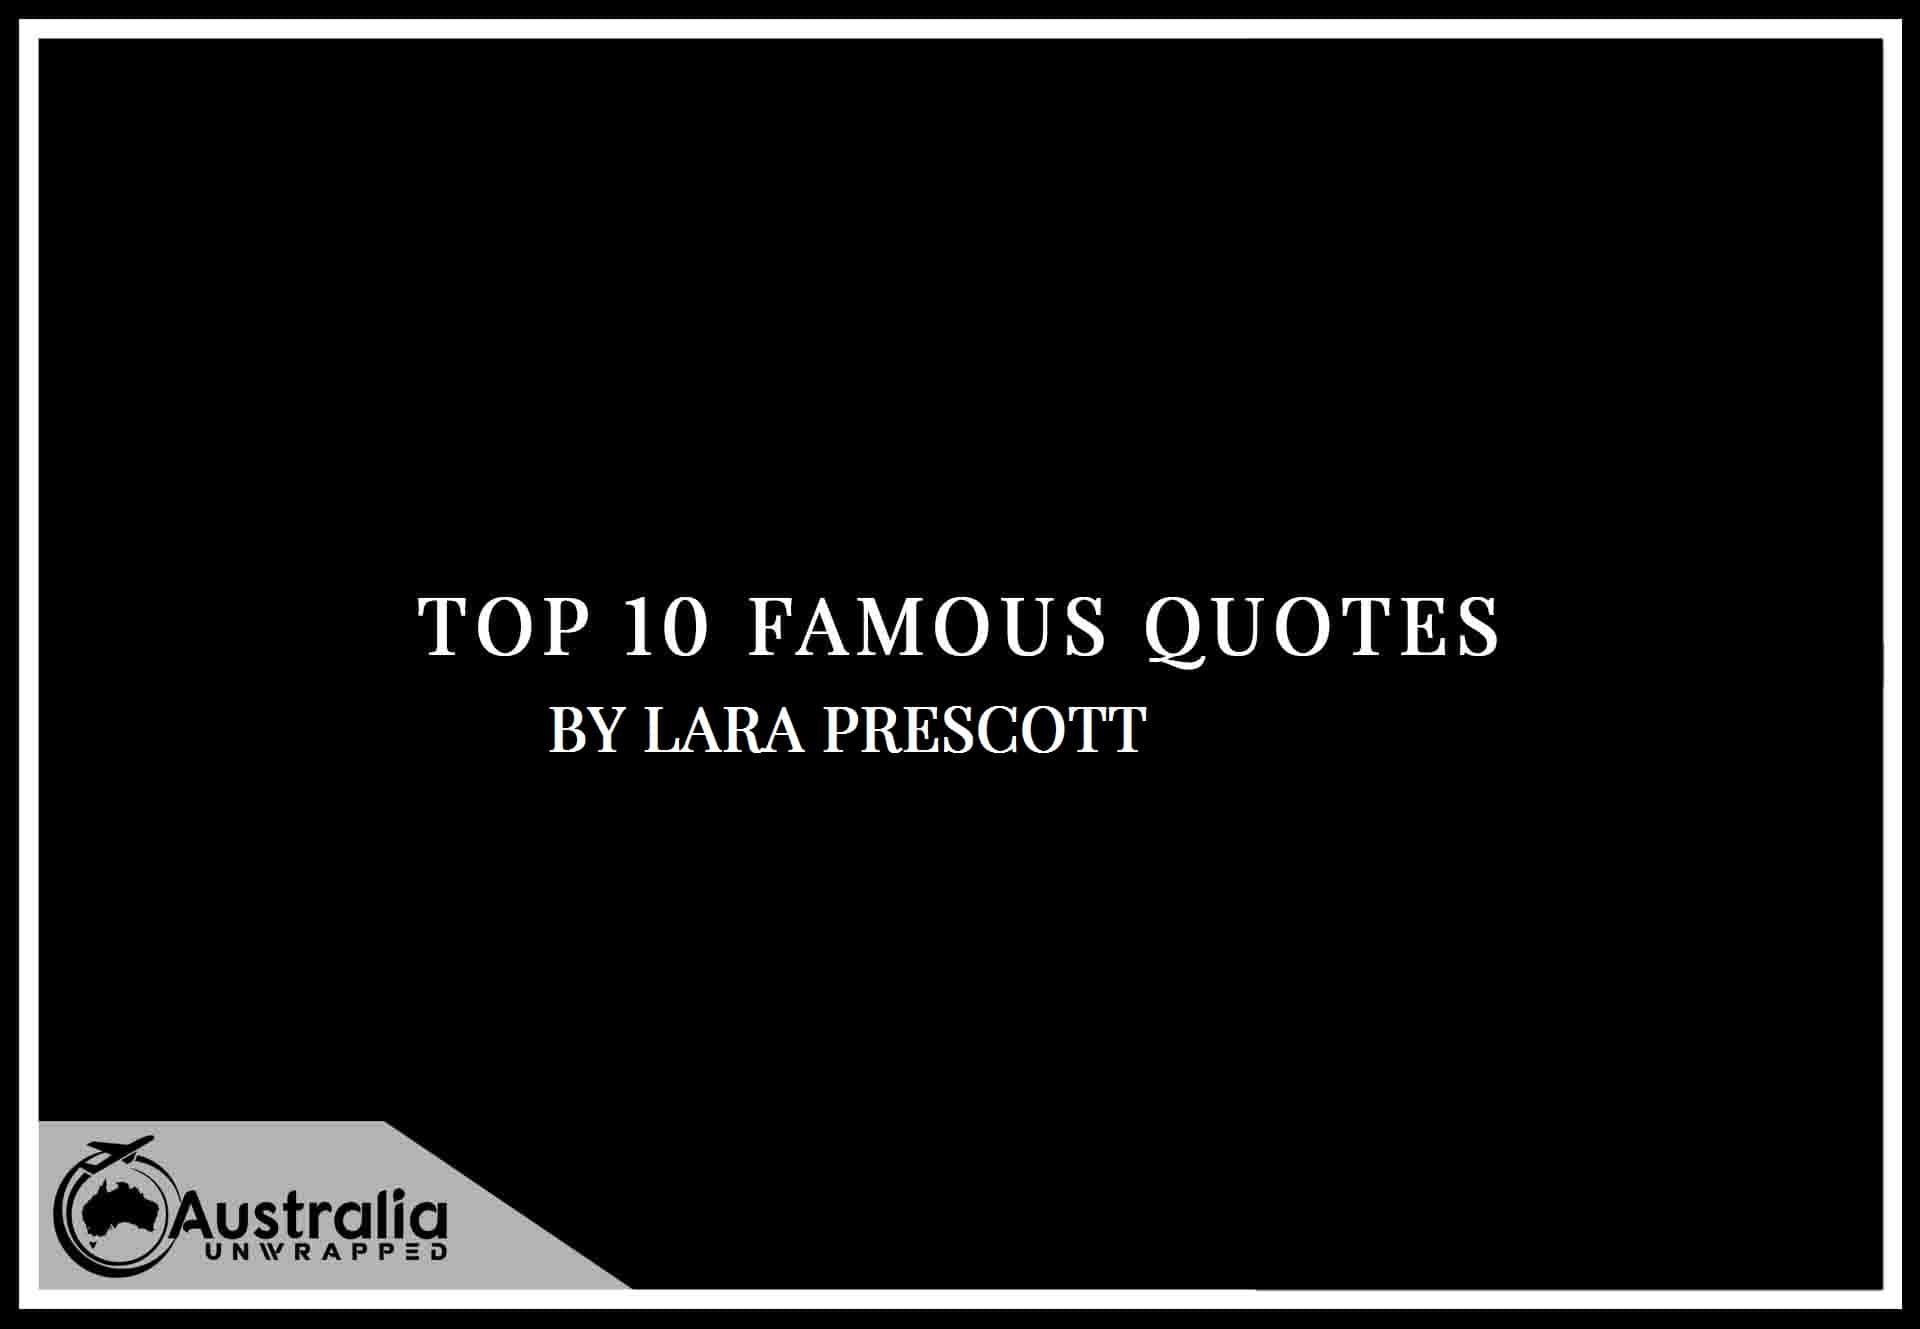 Lara Prescott's Top 10 Popular and Famous Quotes